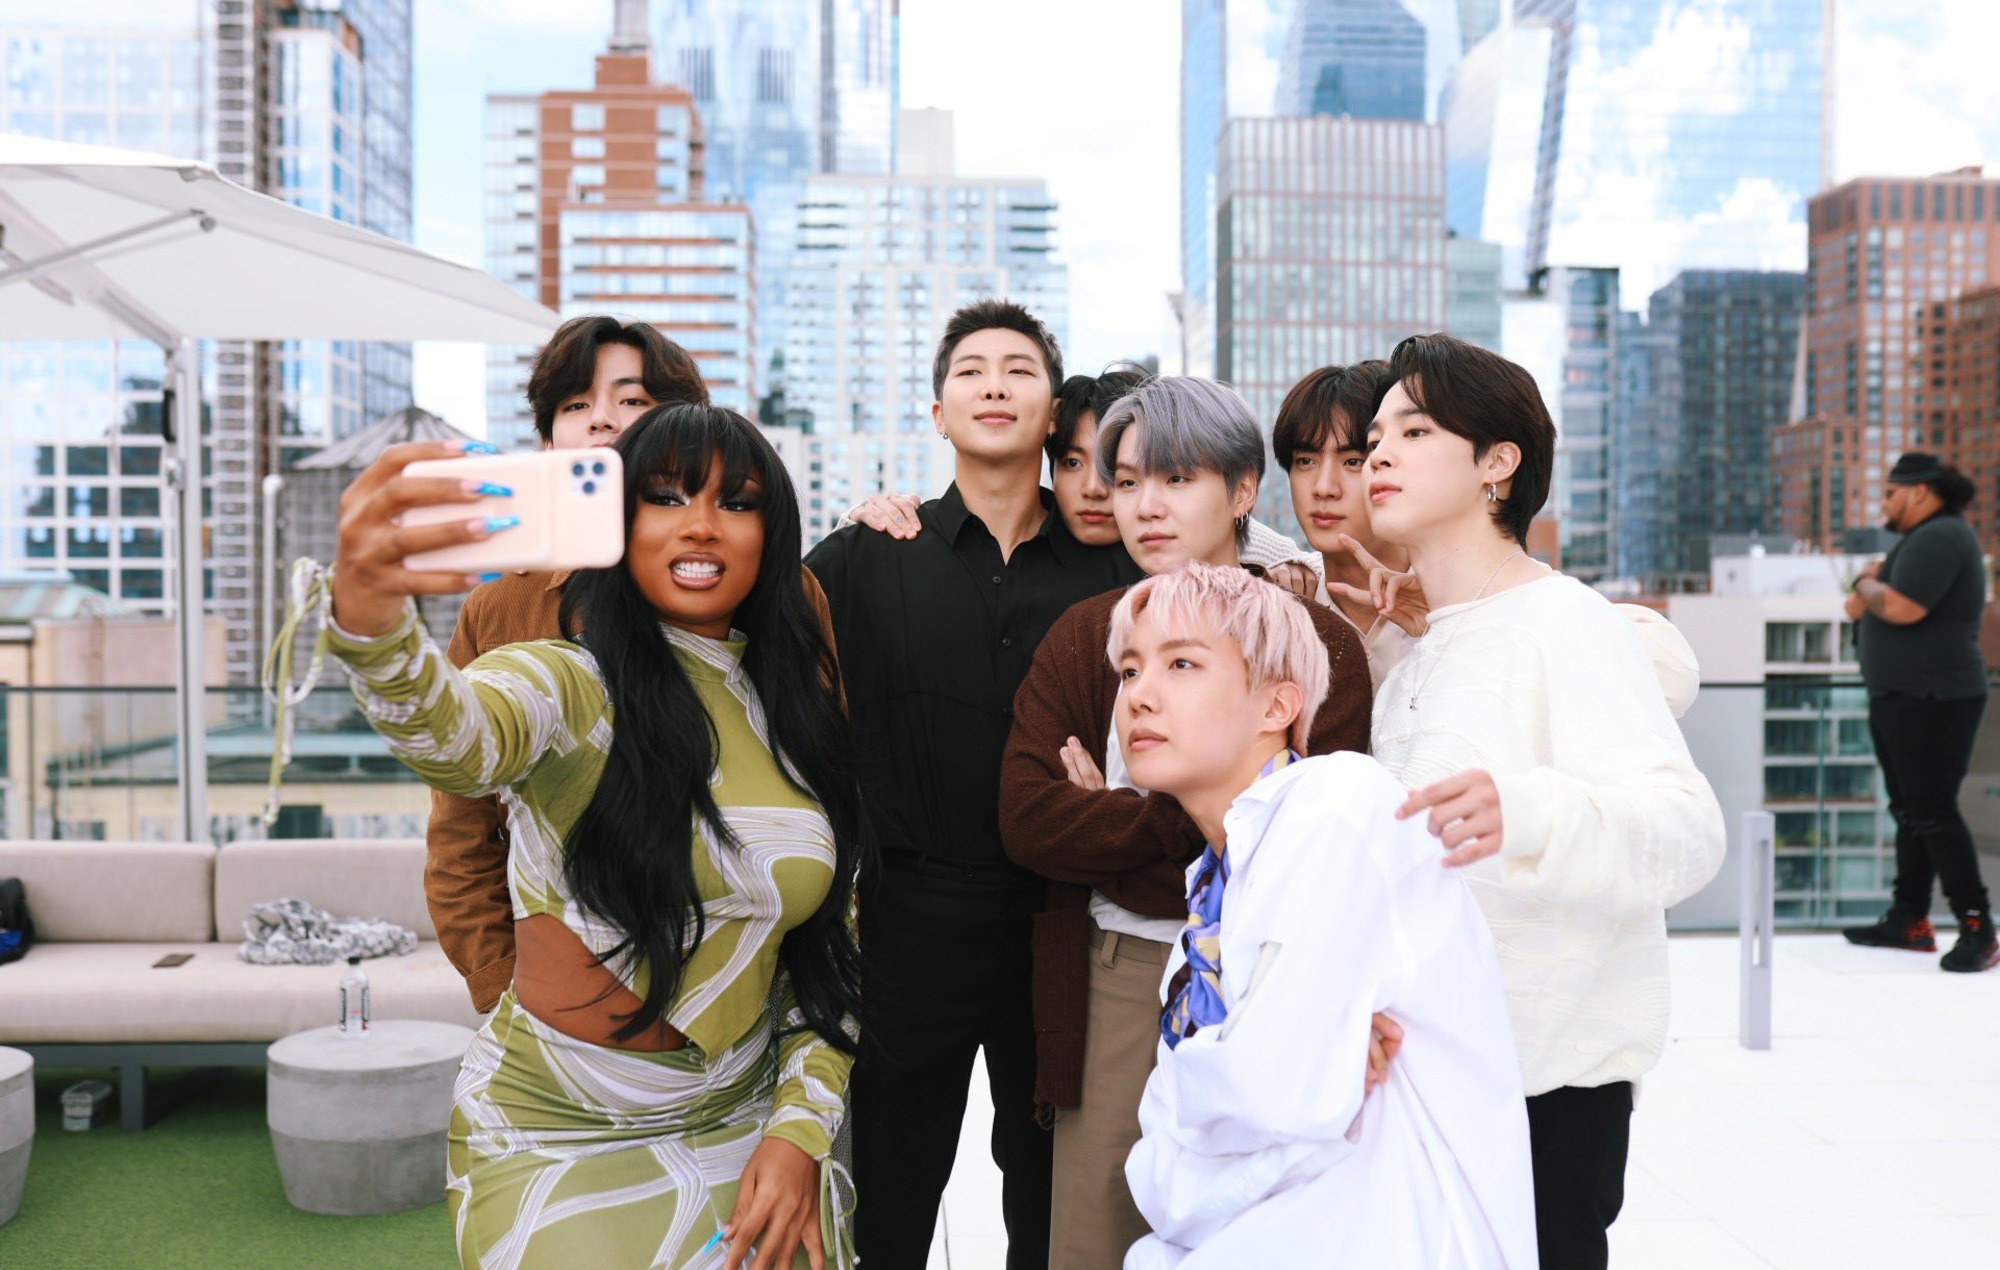 BTS meet up with Megan Thee Stallion in New York City